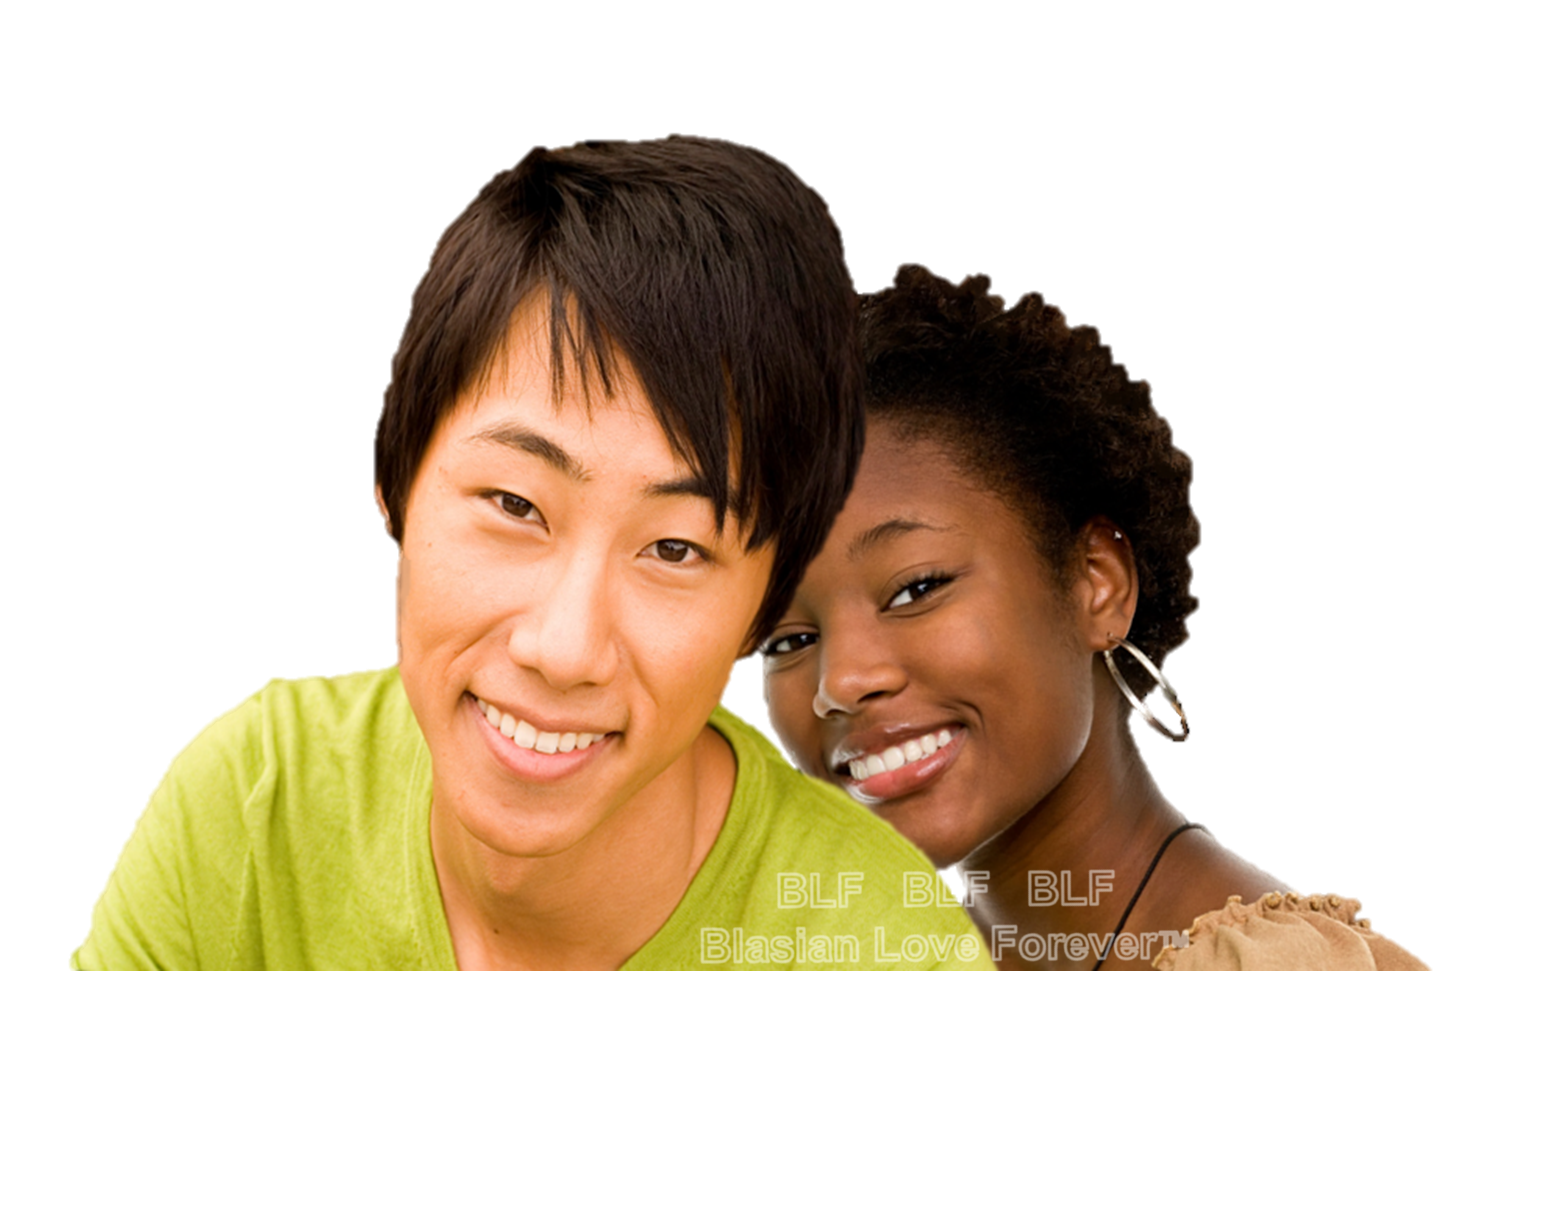 arnoldsburg black women dating site Arnoldsburg's best 100% free online dating site meet loads of available single women in arnoldsburg with mingle2's arnoldsburg dating services find a girlfriend or lover in arnoldsburg, or just have fun flirting online with arnoldsburg single girls.